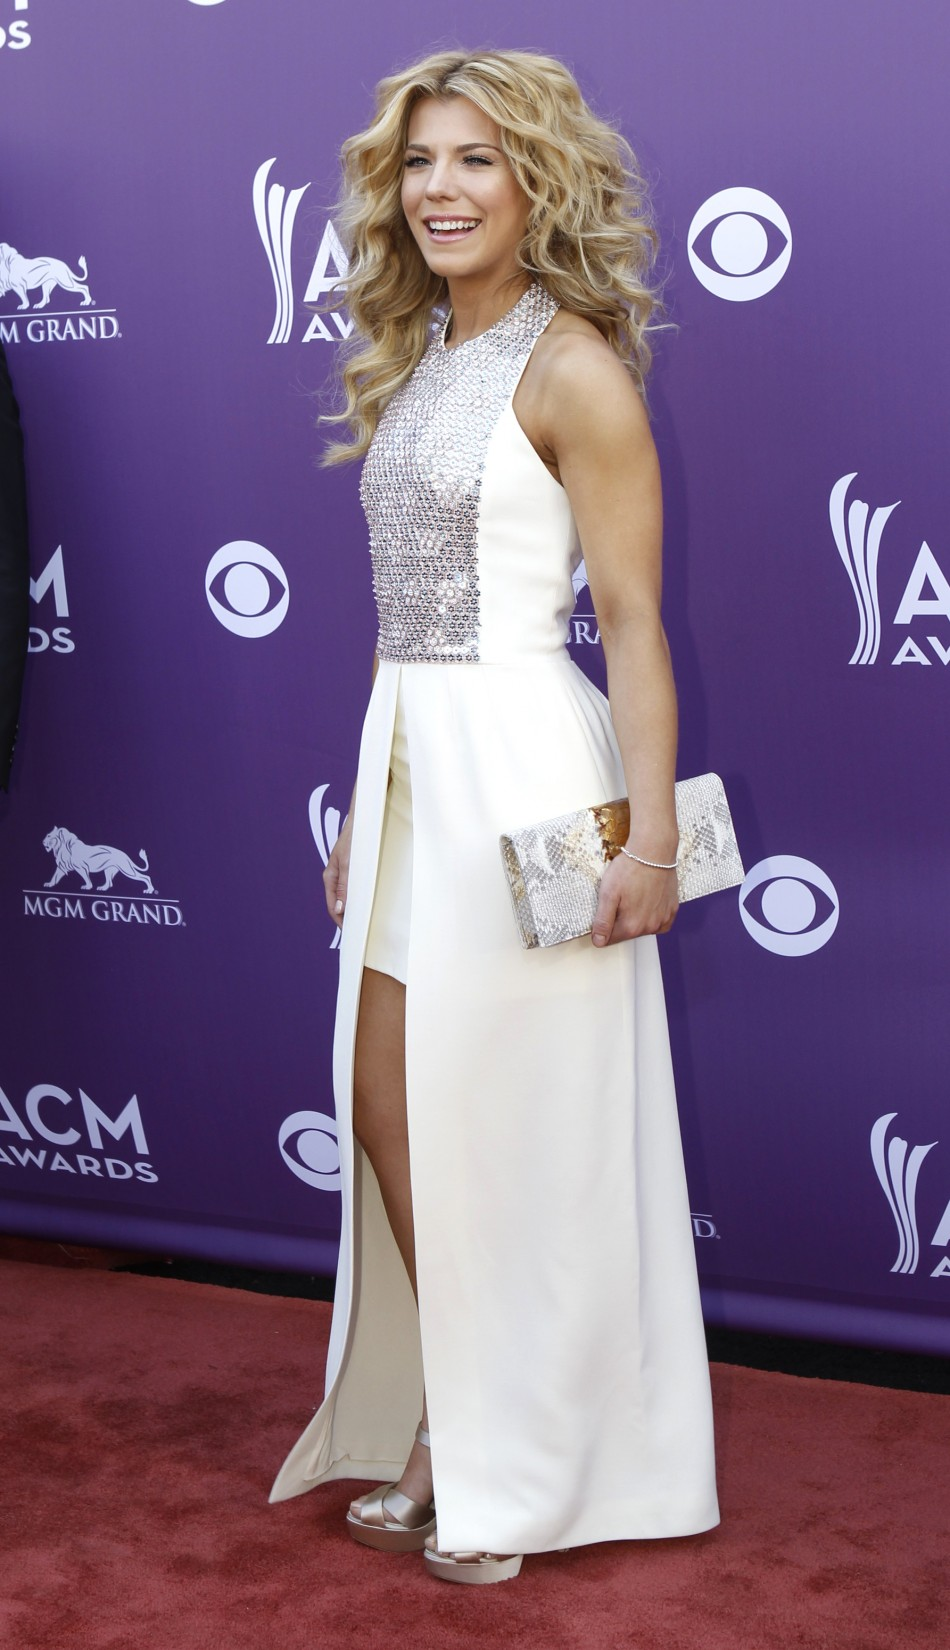 Kimberly Perry from The Band Perry arrives at the 48th ACM Awards in Las Vegas, April 7, 2013.